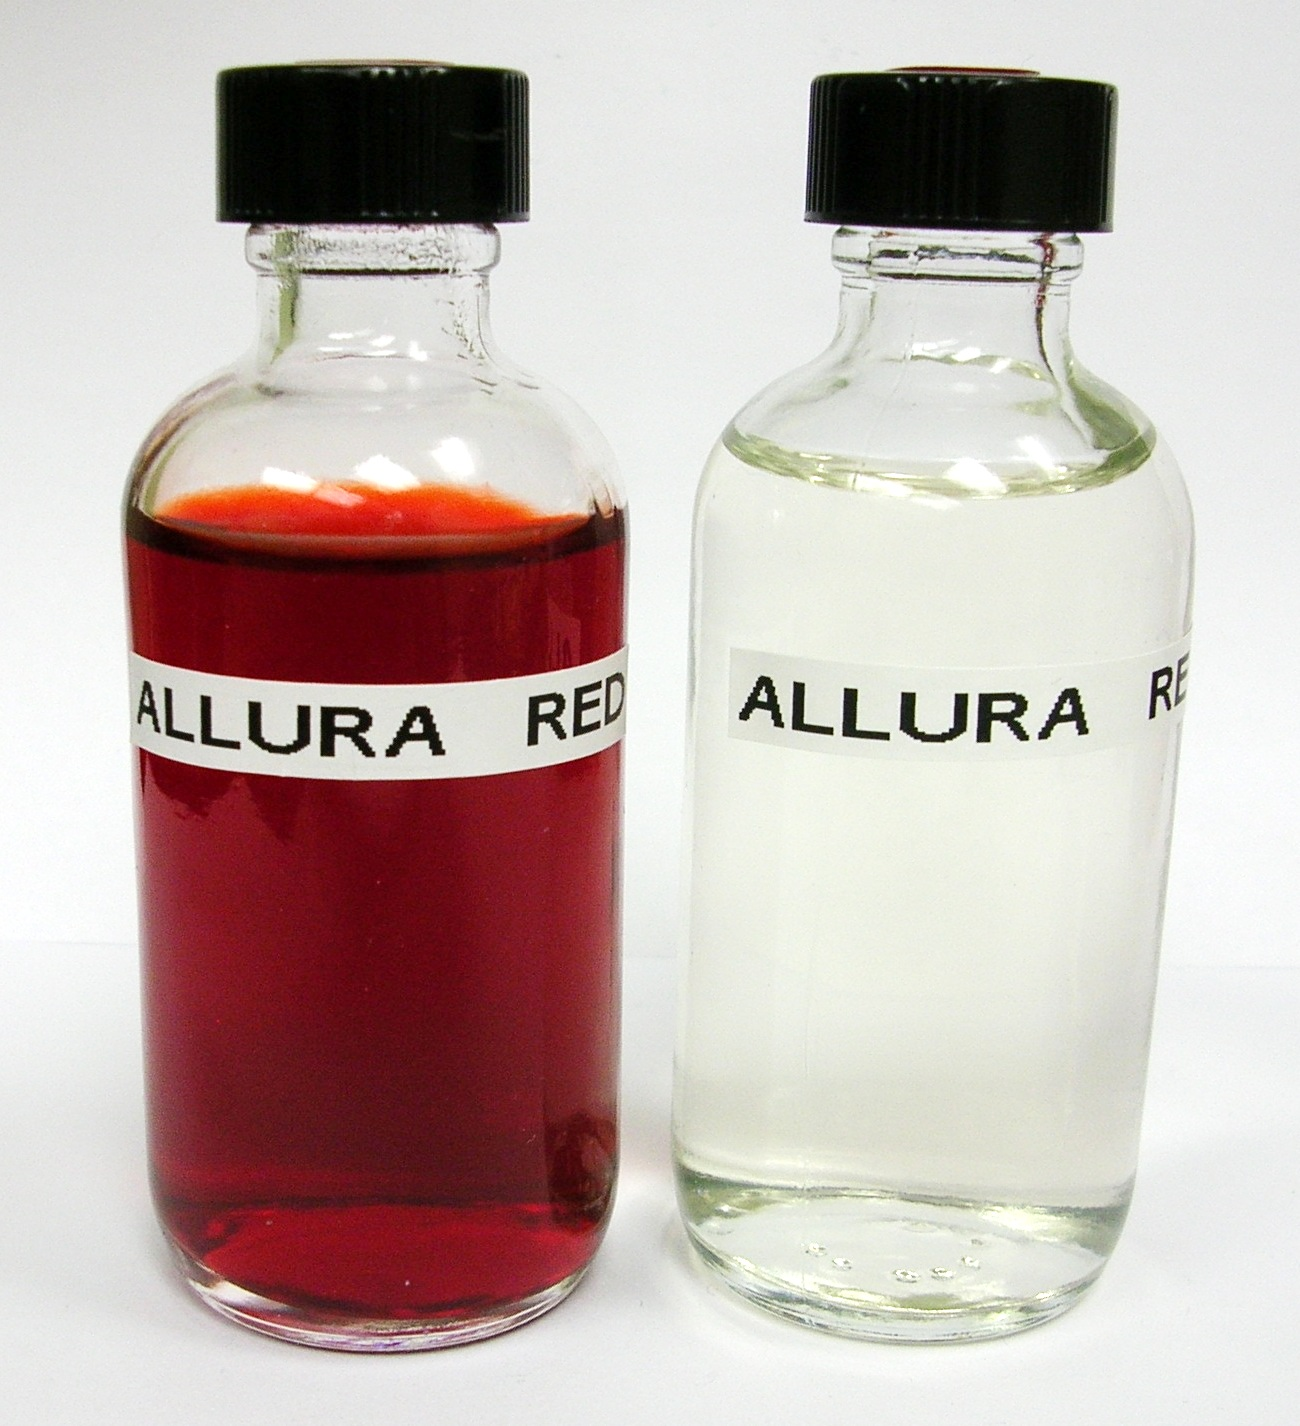 Allura Red dye no 40 wastewater decoloration Catalytic Advanced Oxidation Hydrogen Link catalyst